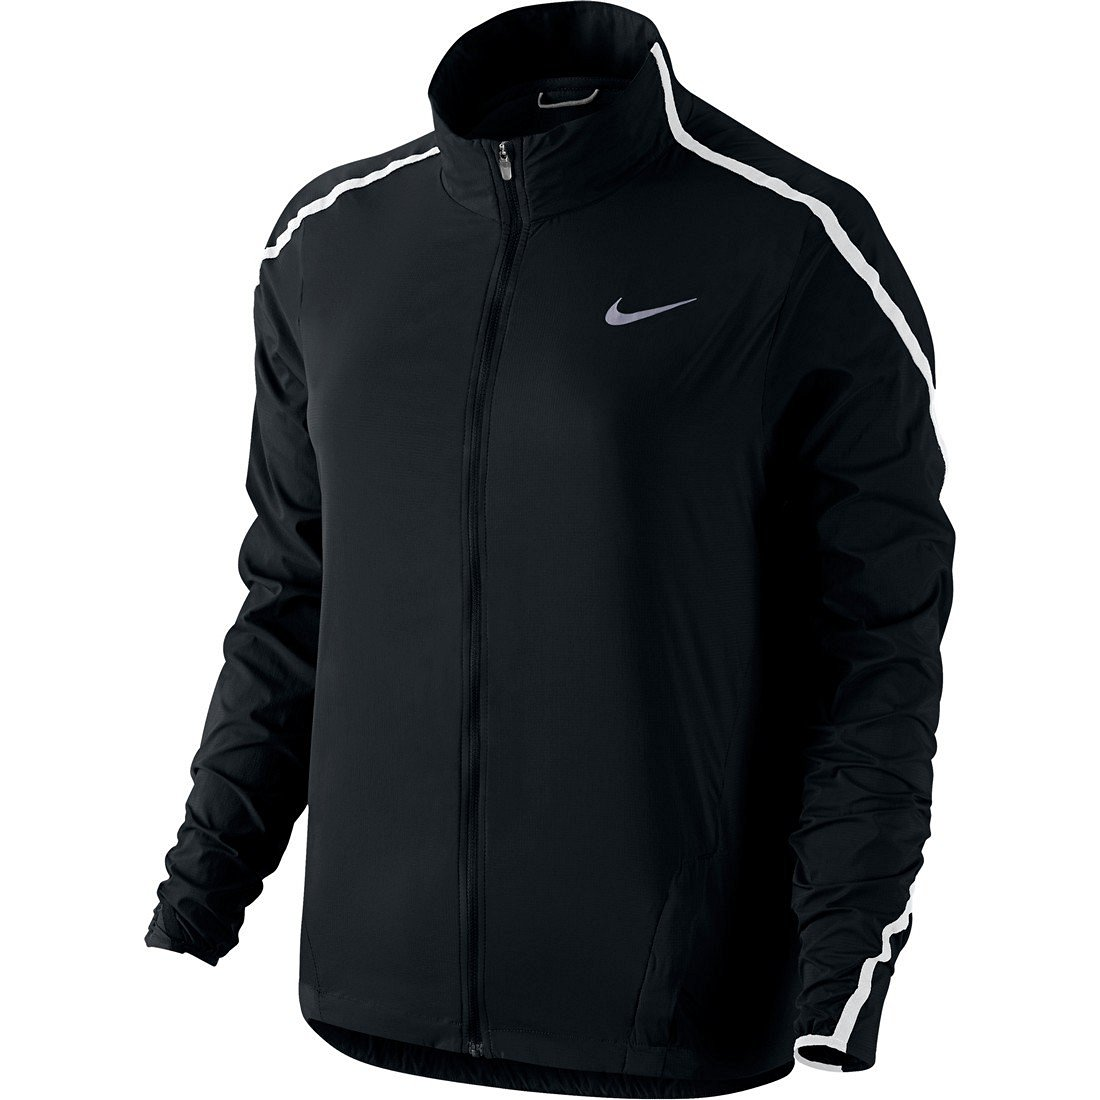 4955e18b011d Get Quotations · Nike Impossibly Light Women s Running Jacket